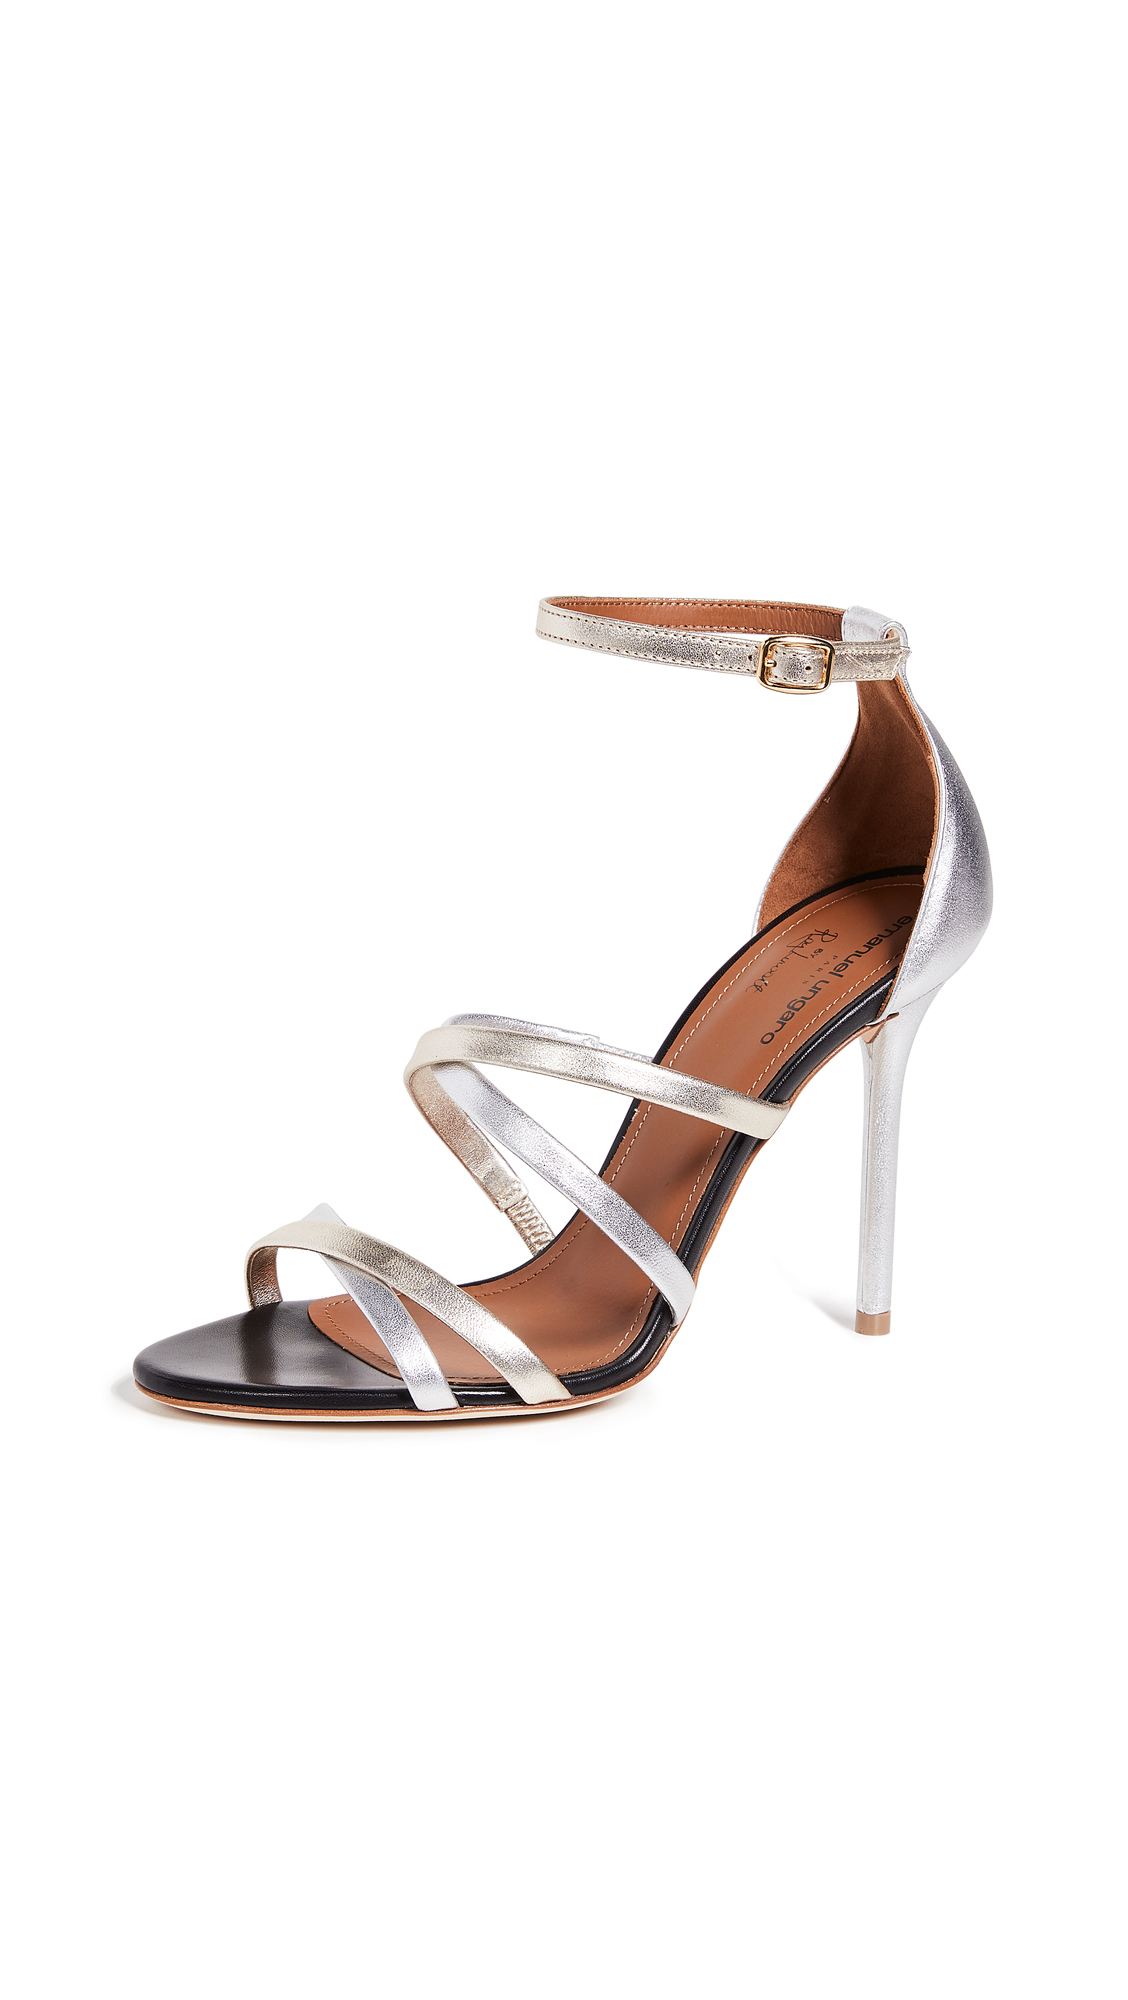 Malone Souliers by Roy Luwolt Cindy 100 Emanuel Ungaro Sandals